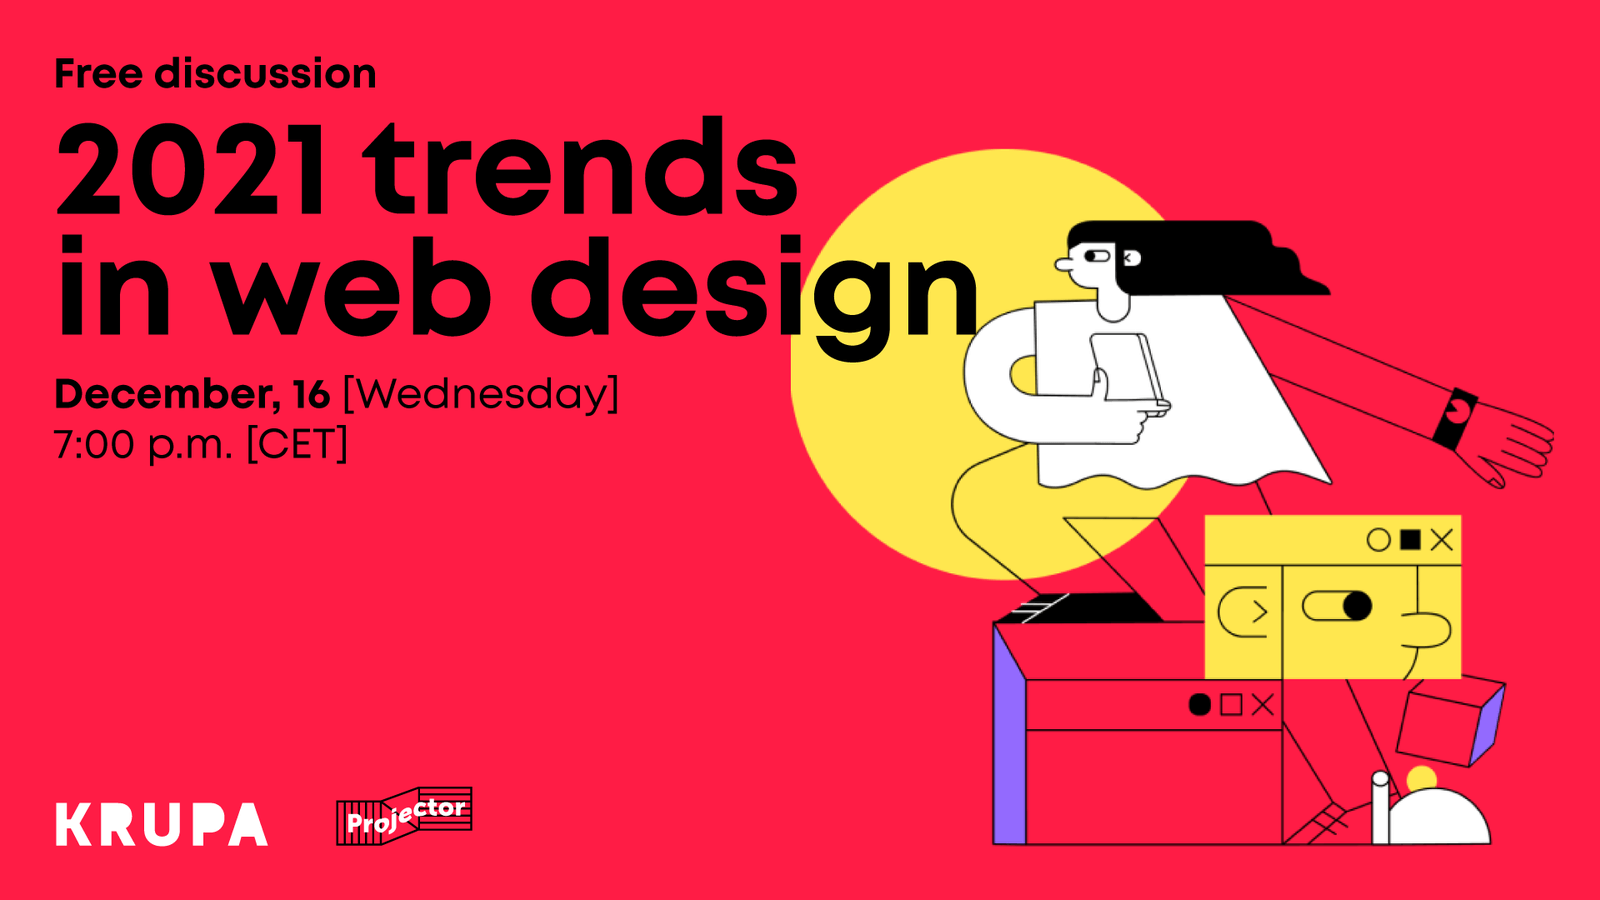 Free discussion: 2021 trends in web design